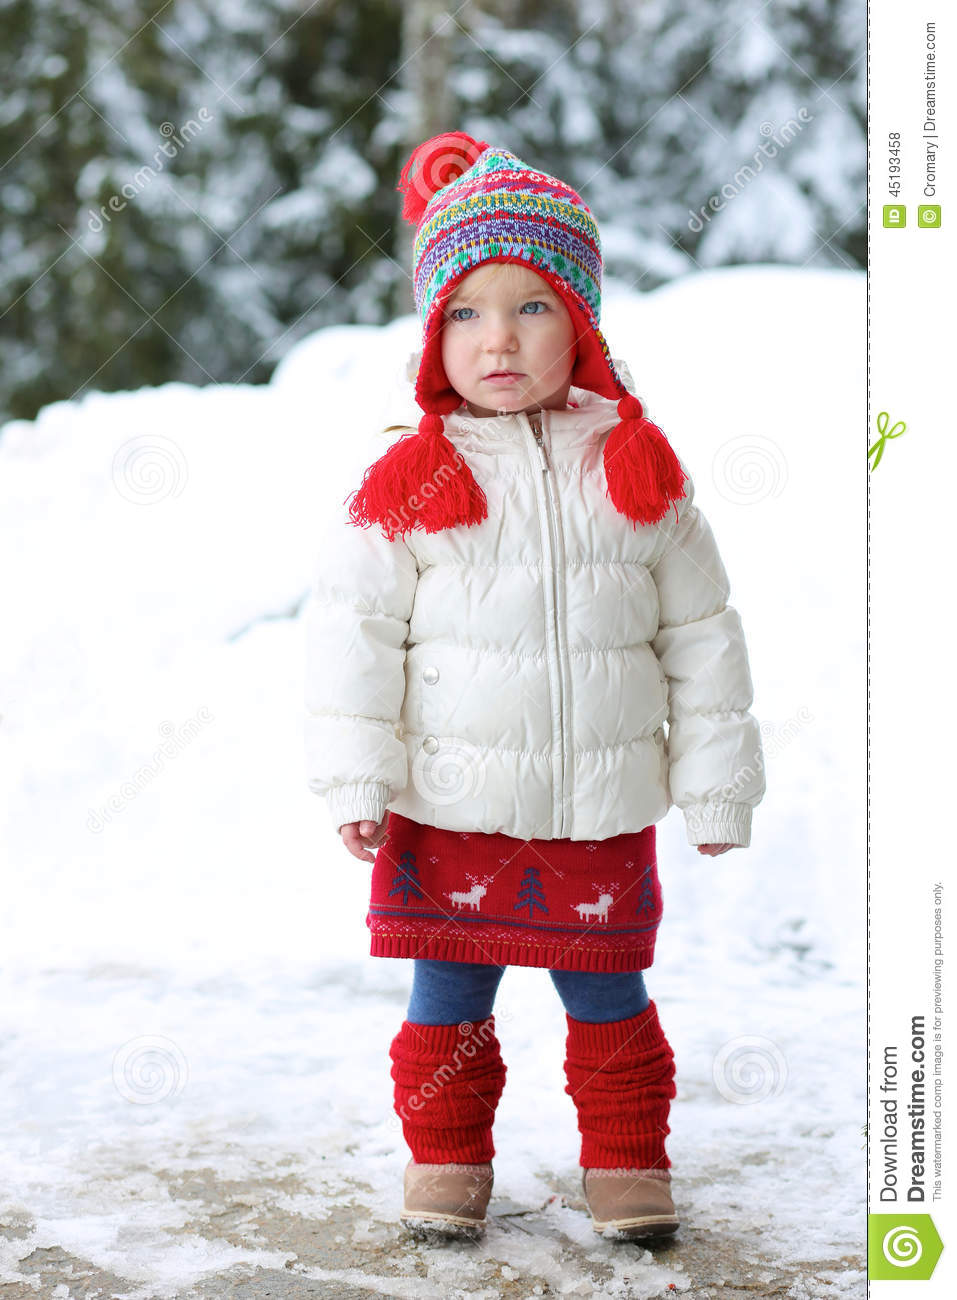 adorable preschooler girl enjoys winter at ski resort stock photo image of jacket cute 45193458. Black Bedroom Furniture Sets. Home Design Ideas